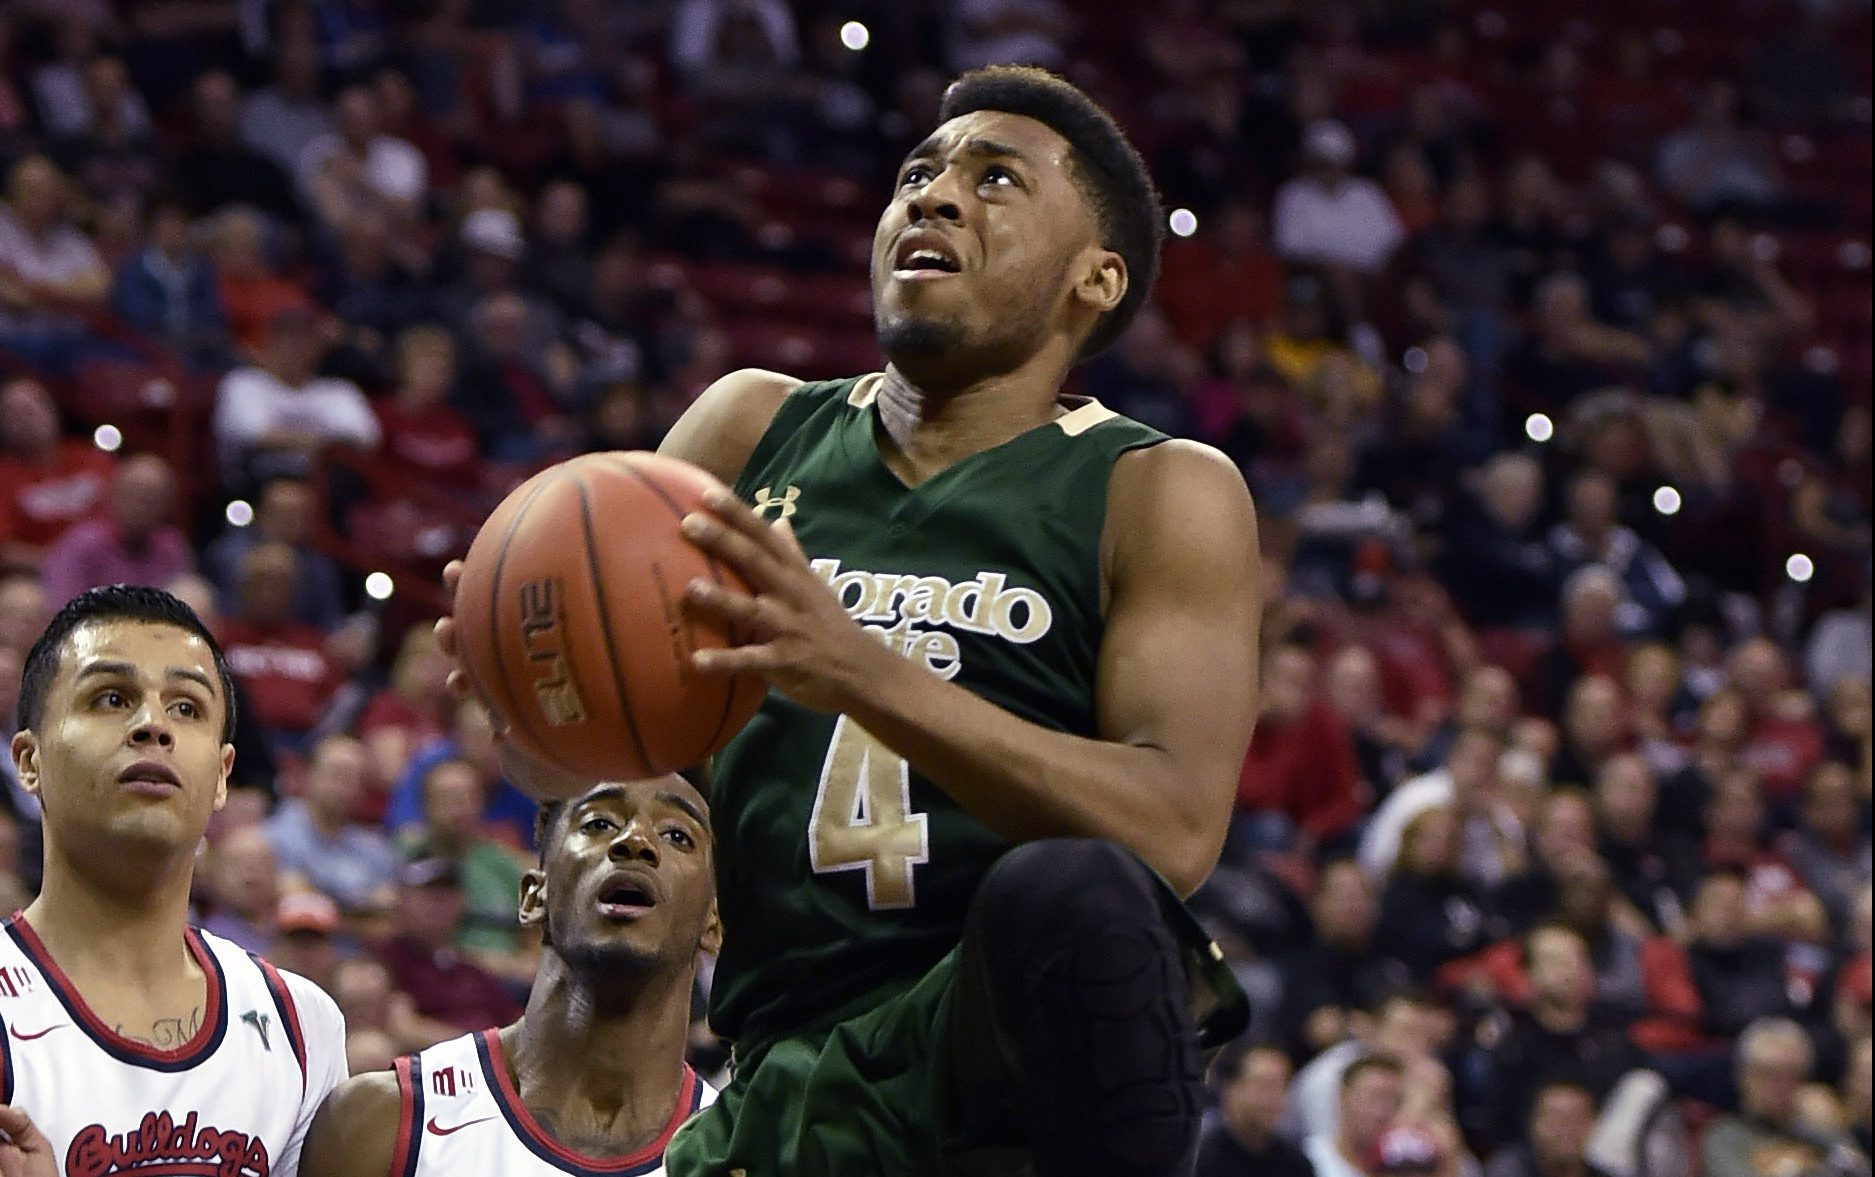 Colorado State's John Gillon (4) shoots against Fresno State during the first half of an NCAA college basketball game in the semifinals at the Mountain West Conference men's tournament Friday, March 11, 2016, in Las Vegas. (AP Photo/David Becker)